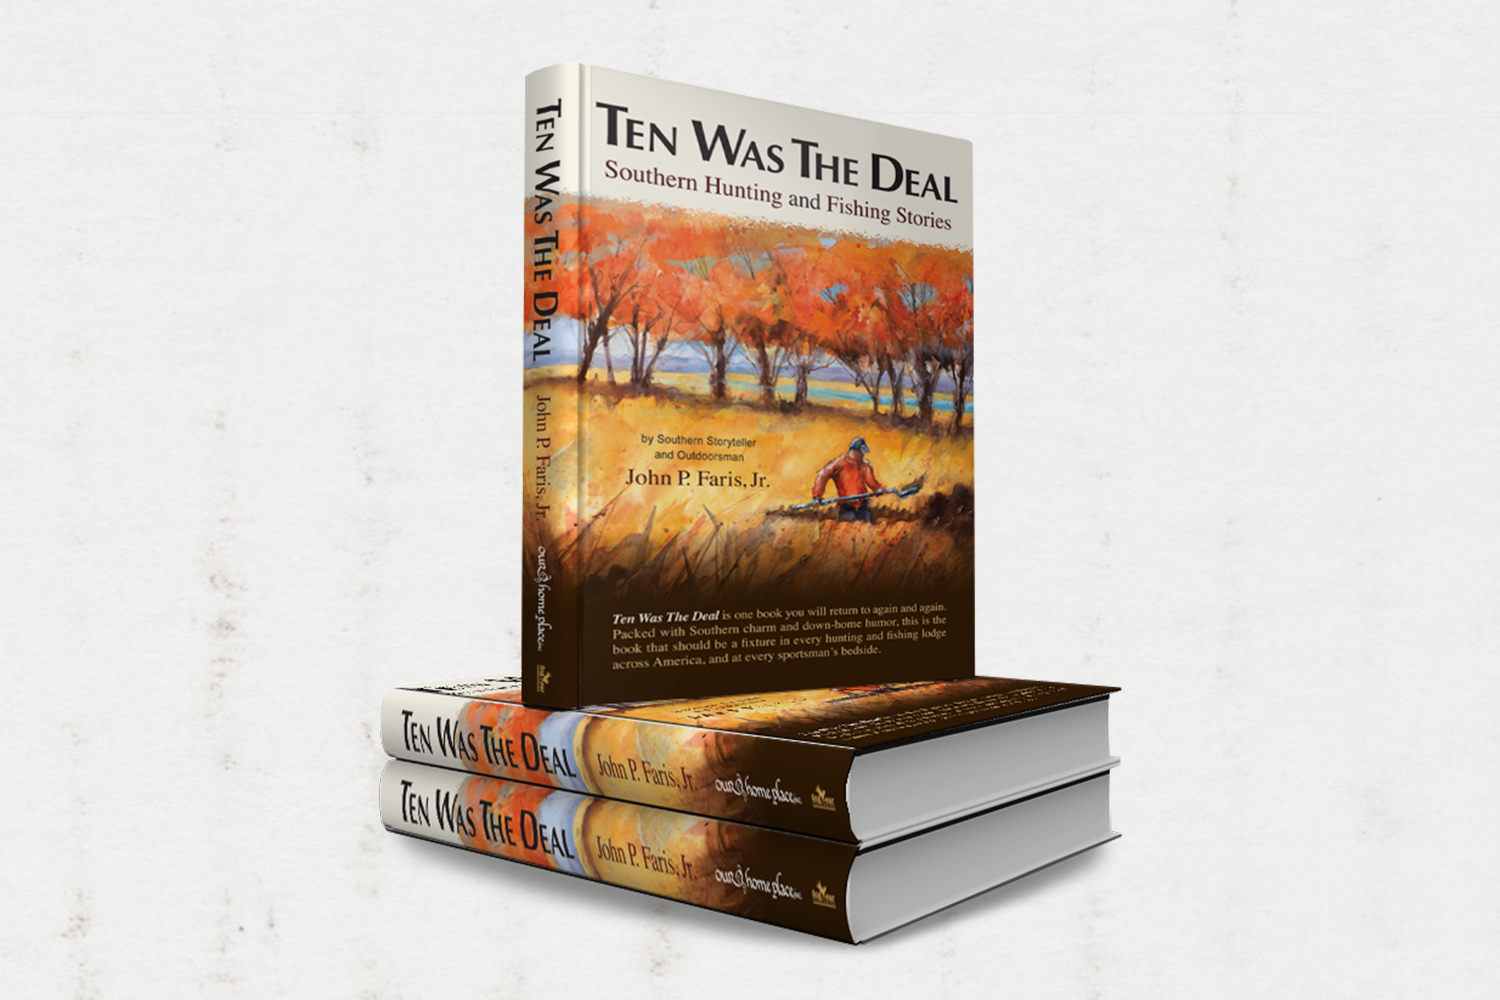 WORK_Ten-Was-The-Deal-3-Book-Stack-e1439669990280.png